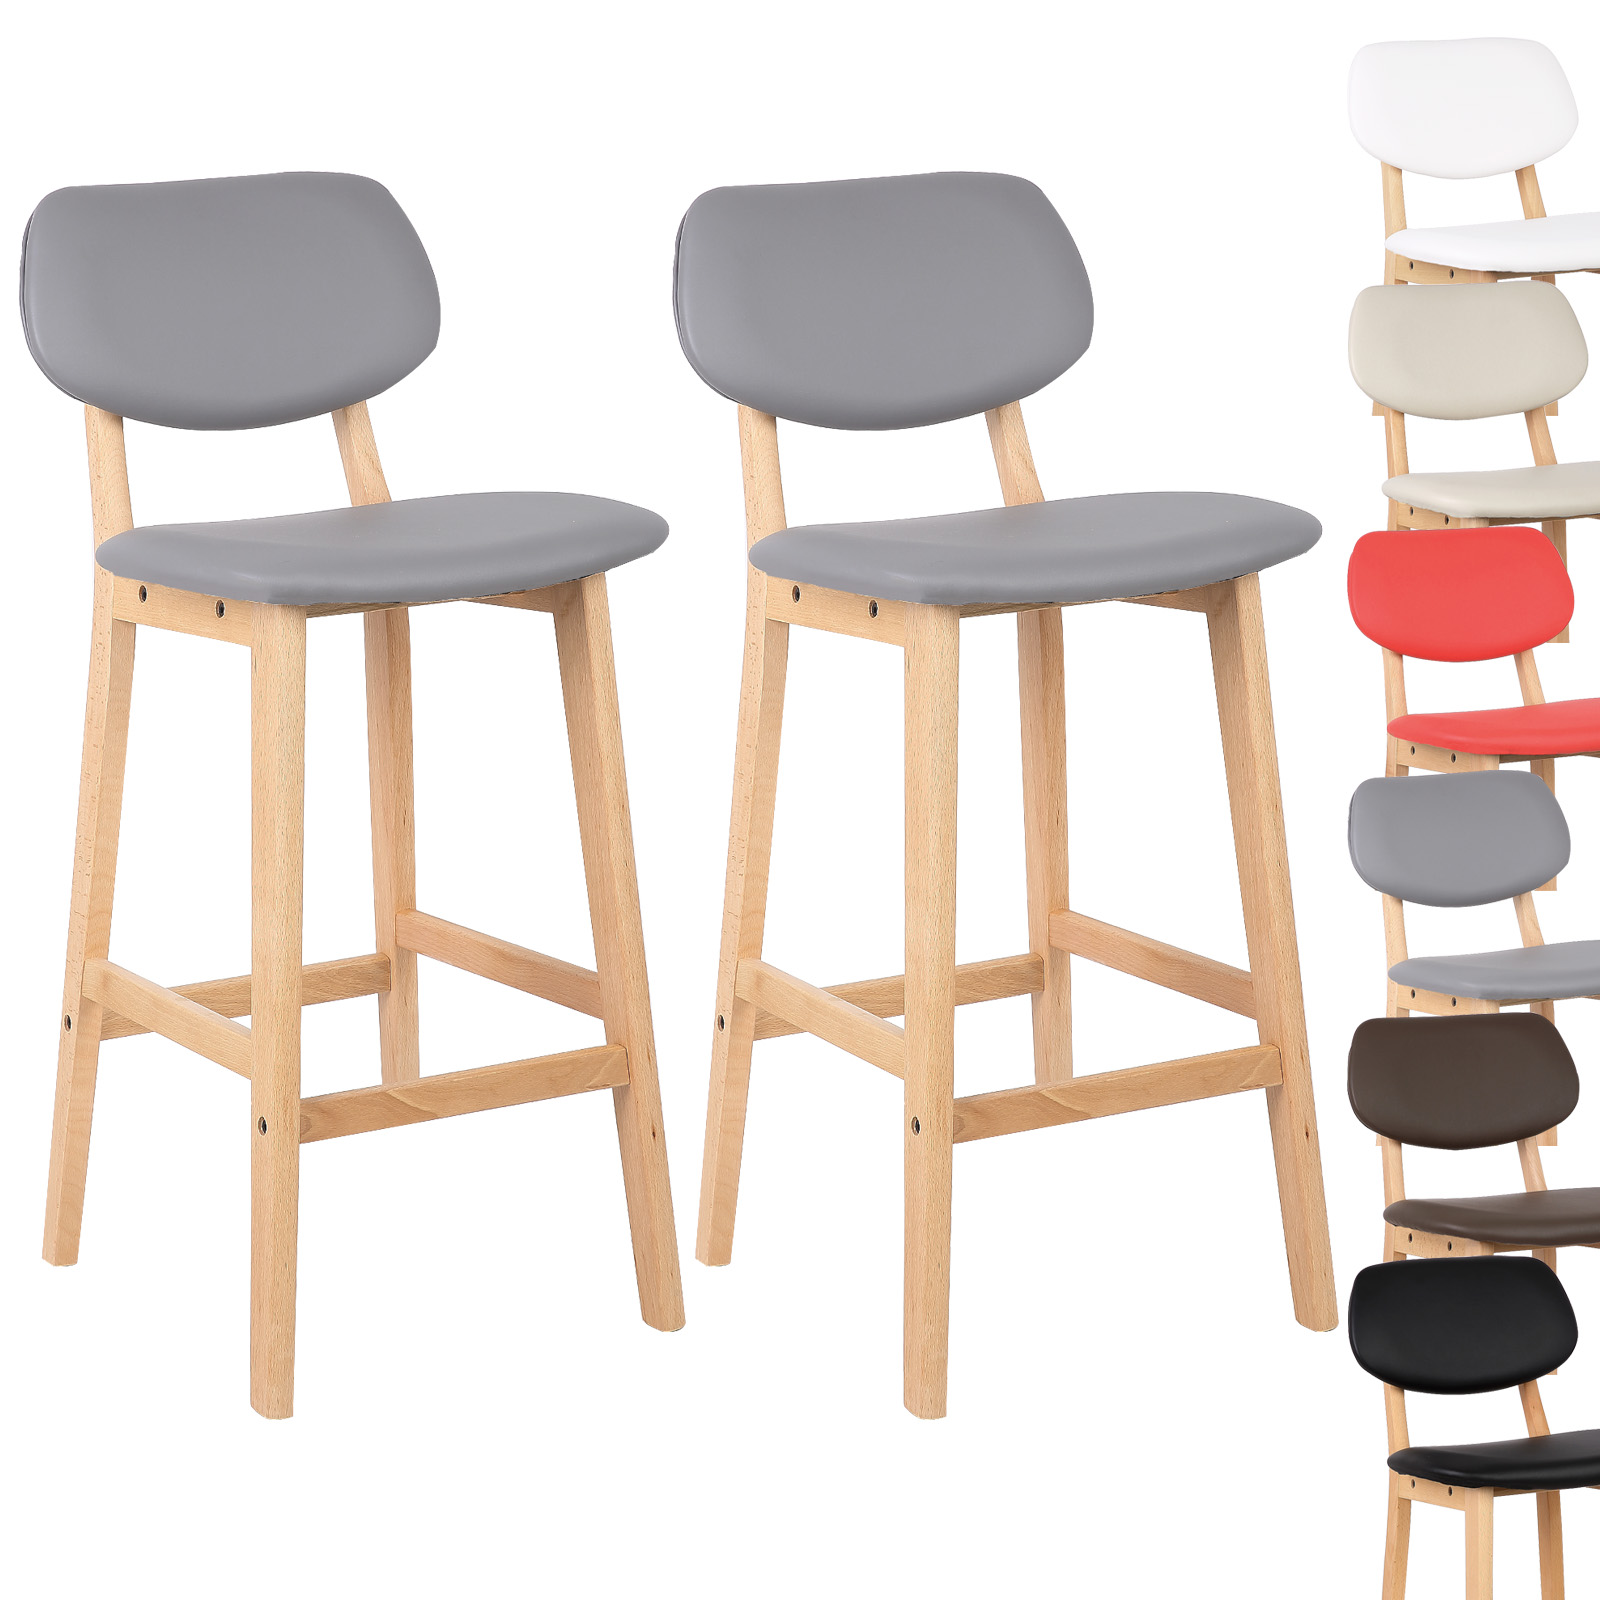 2 x tabouret de bar en cuir artificiel tabourets cuisine design en bois f099 ebay. Black Bedroom Furniture Sets. Home Design Ideas